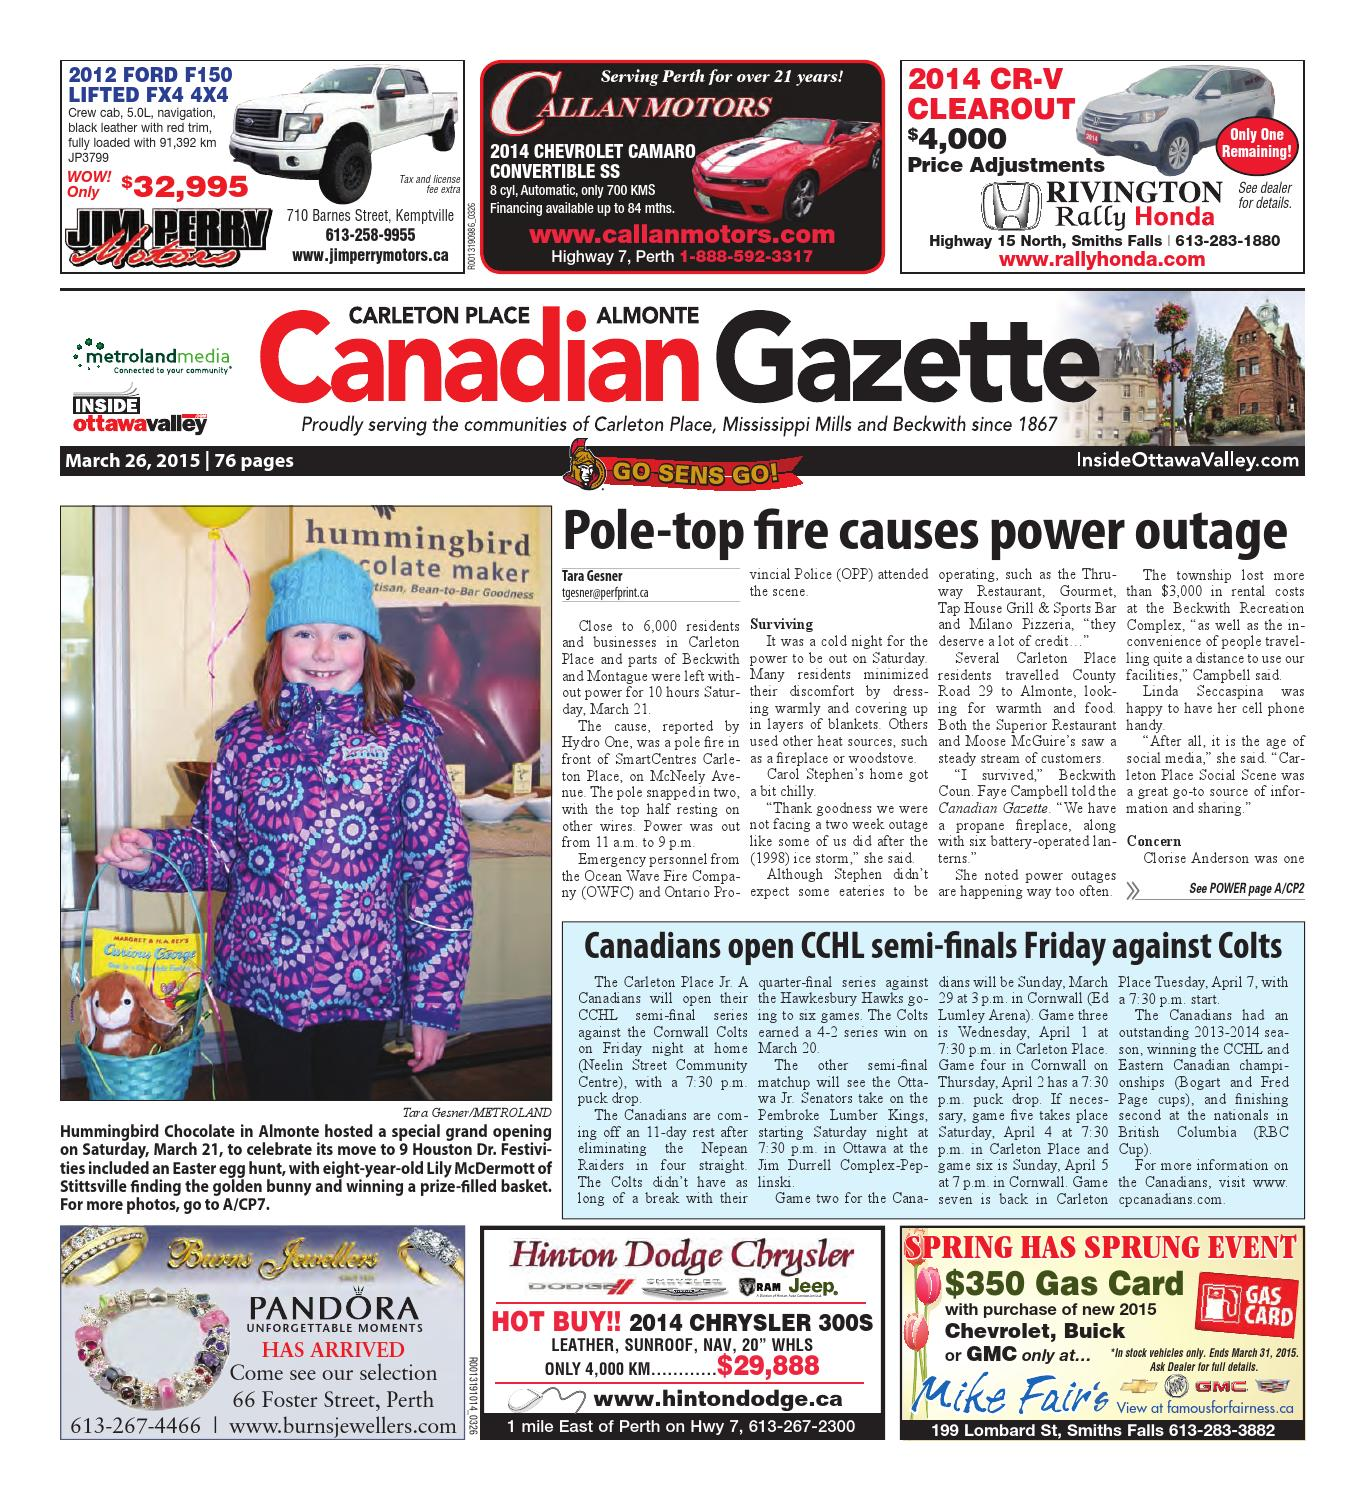 4b79e1dcf Almontecarletonplace032615 by Metroland East - Almonte Carleton Place  Canadian Gazette - issuu